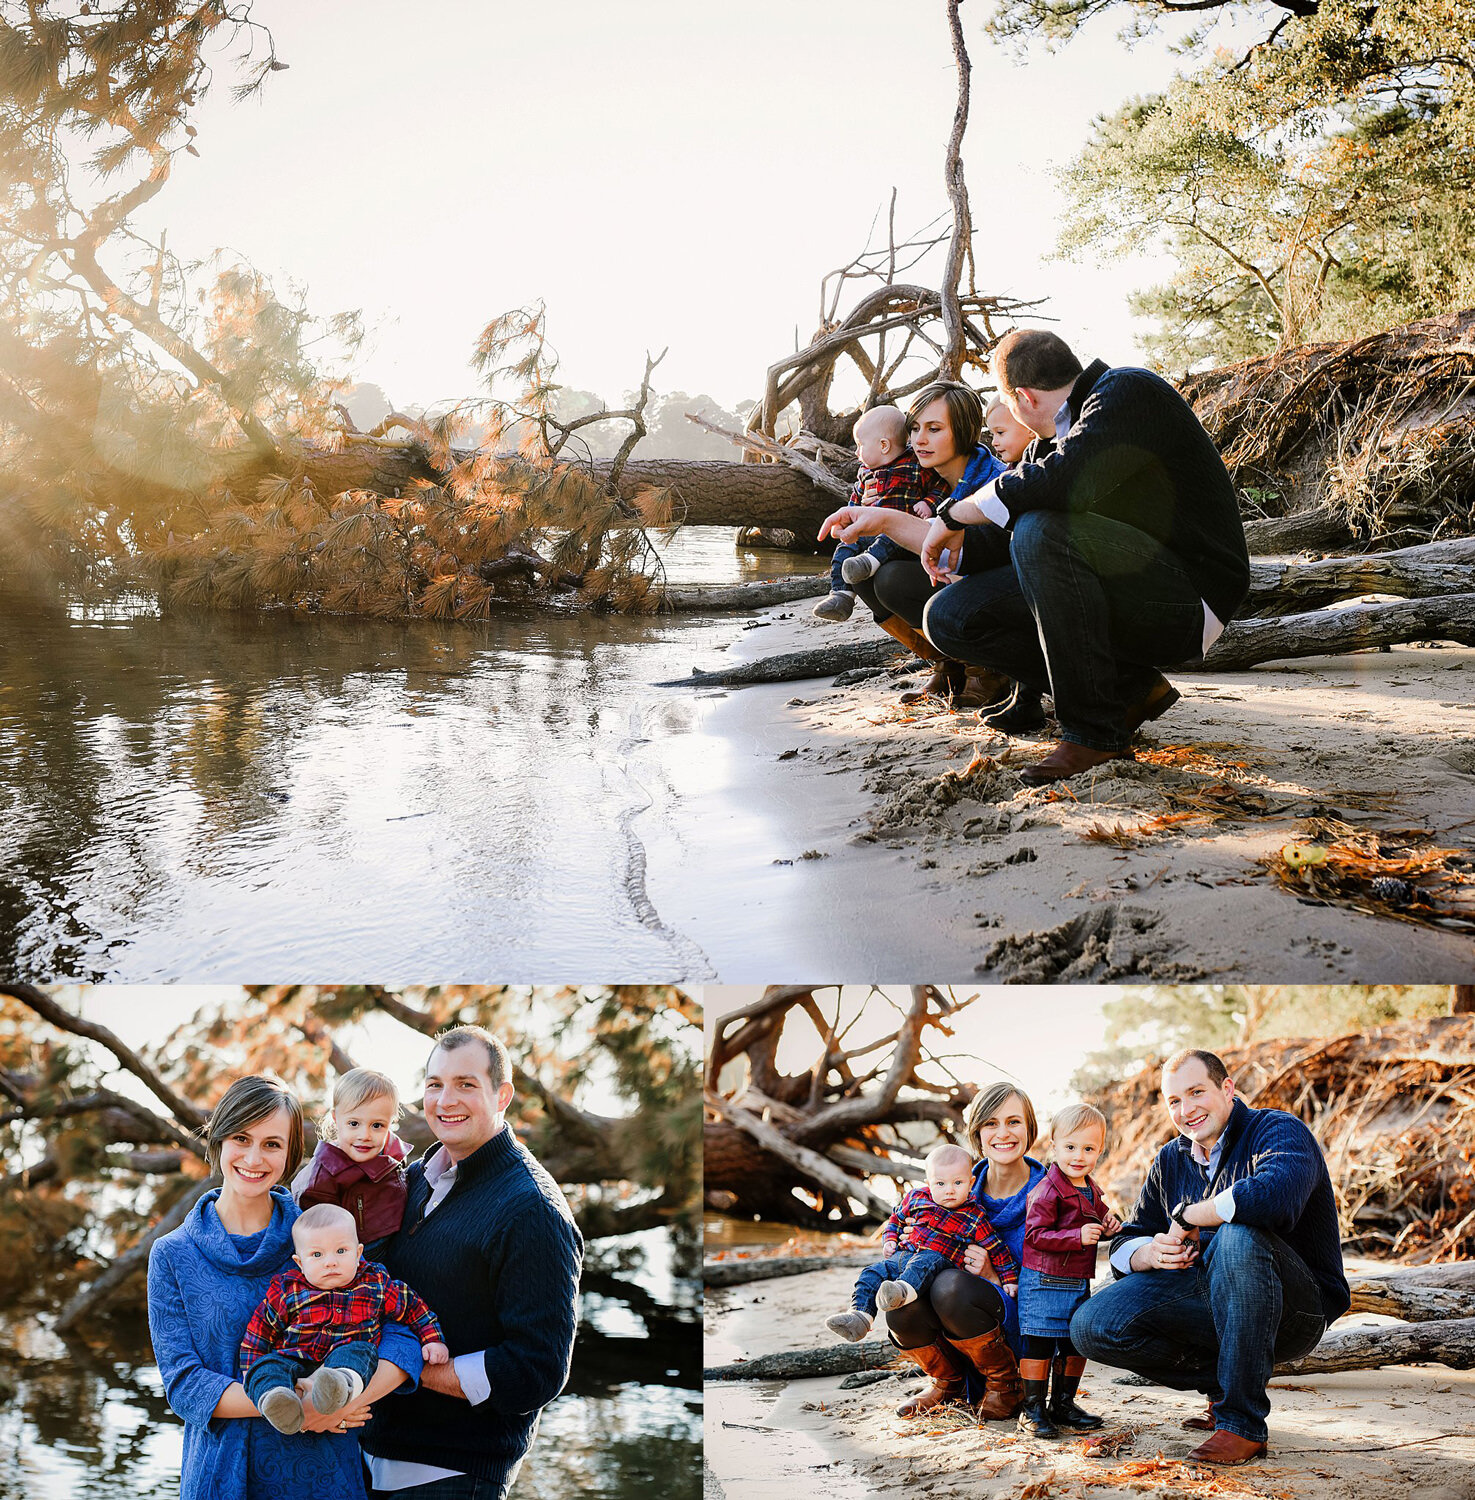 family-pictures-outdoors-fall-virginia-beach-melissa-bliss-photography.jpg